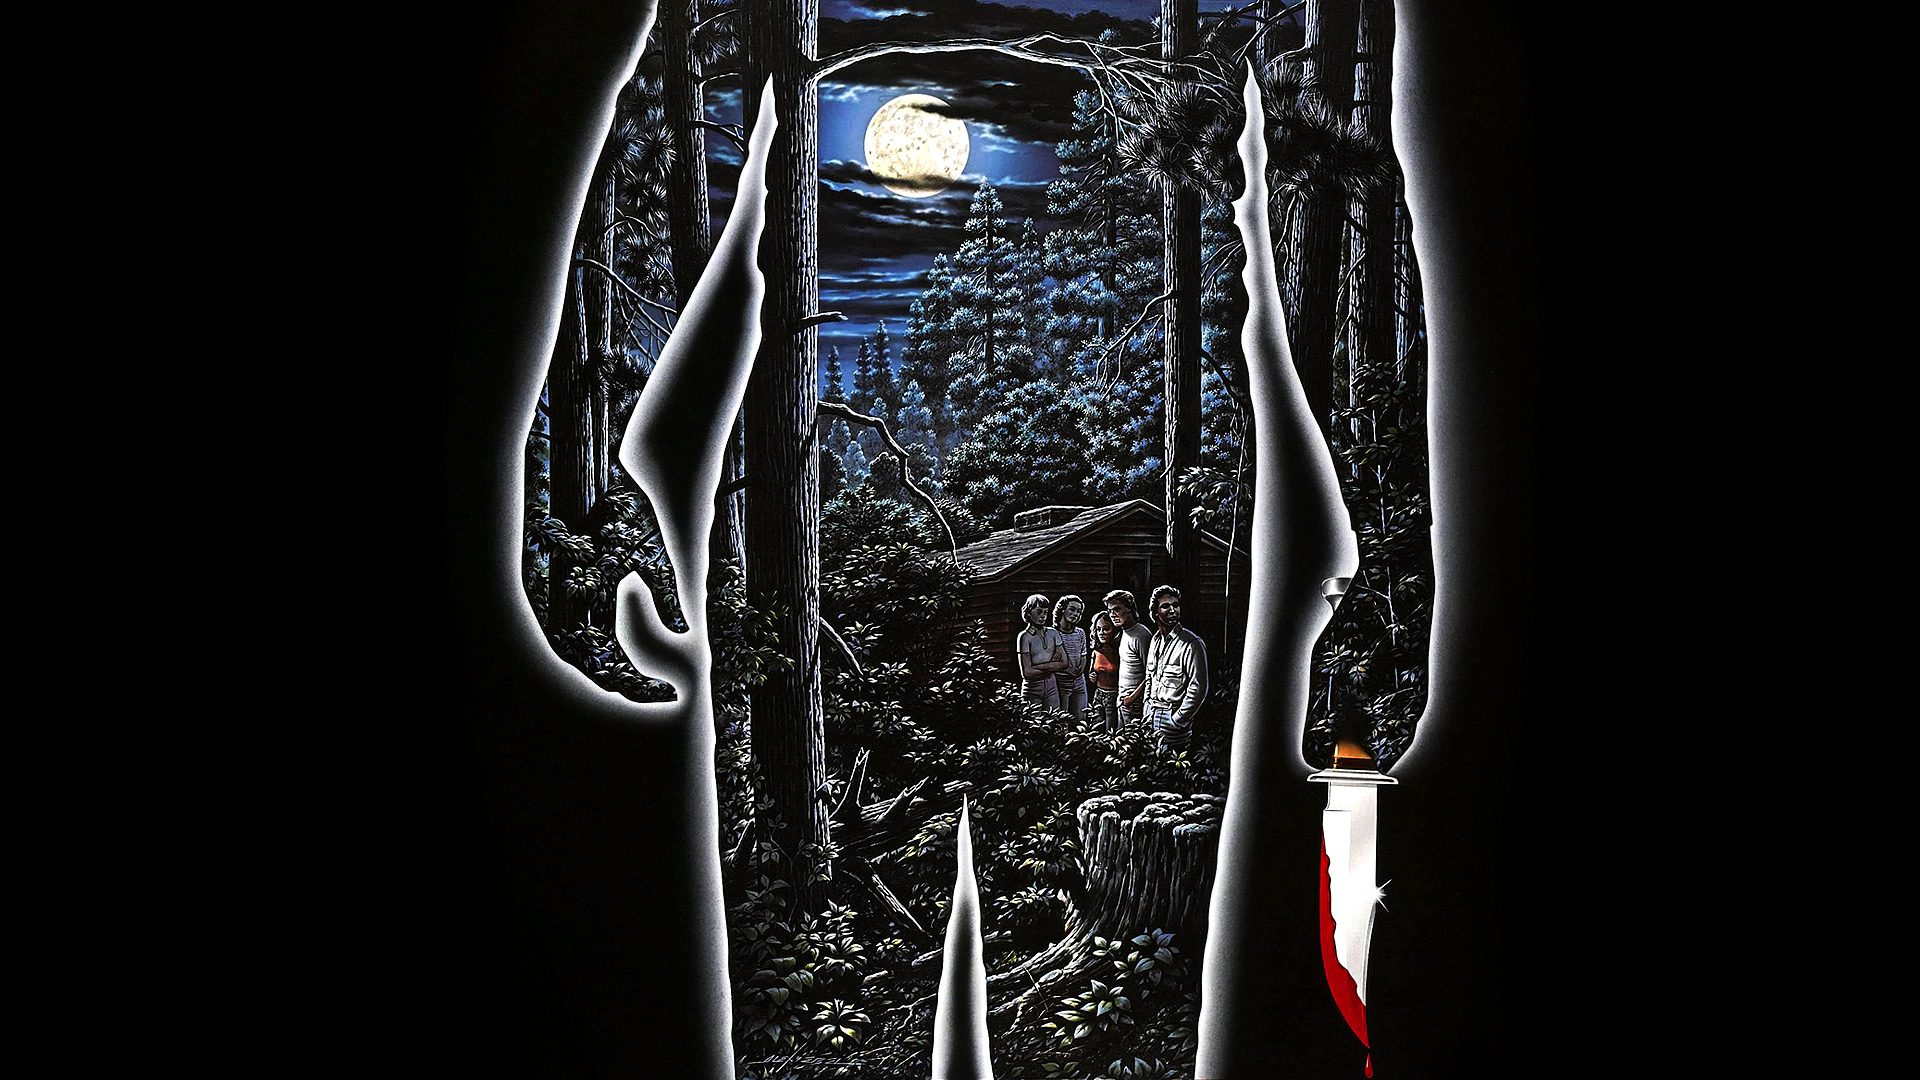 Friday the 13th (1980) HD Wallpaper